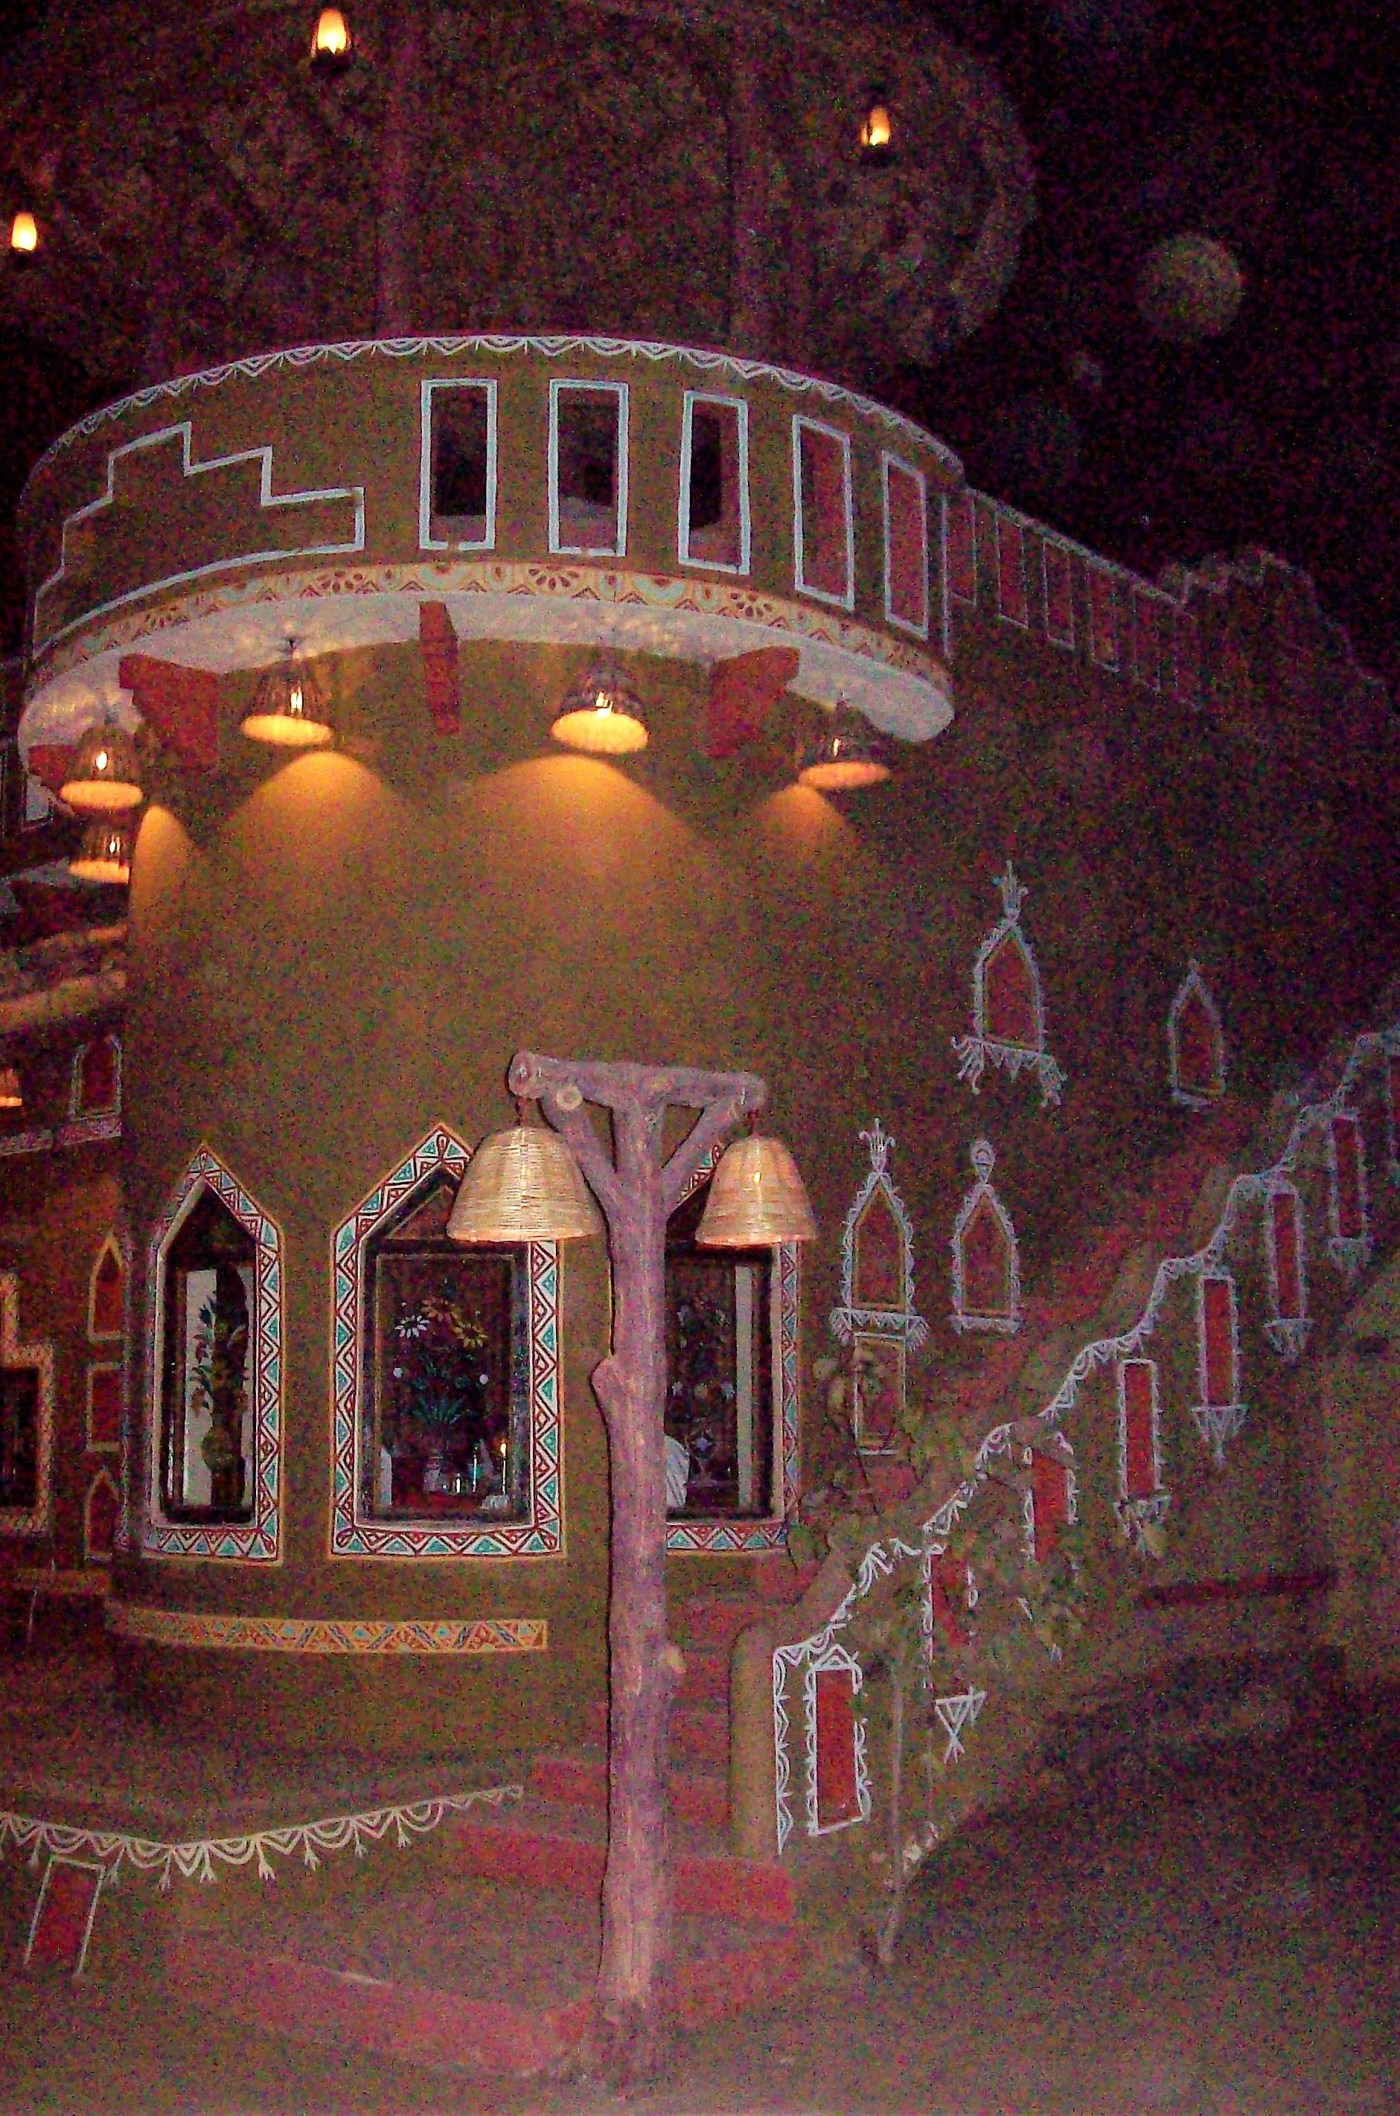 Cottage in chowki dhani, jaipur India